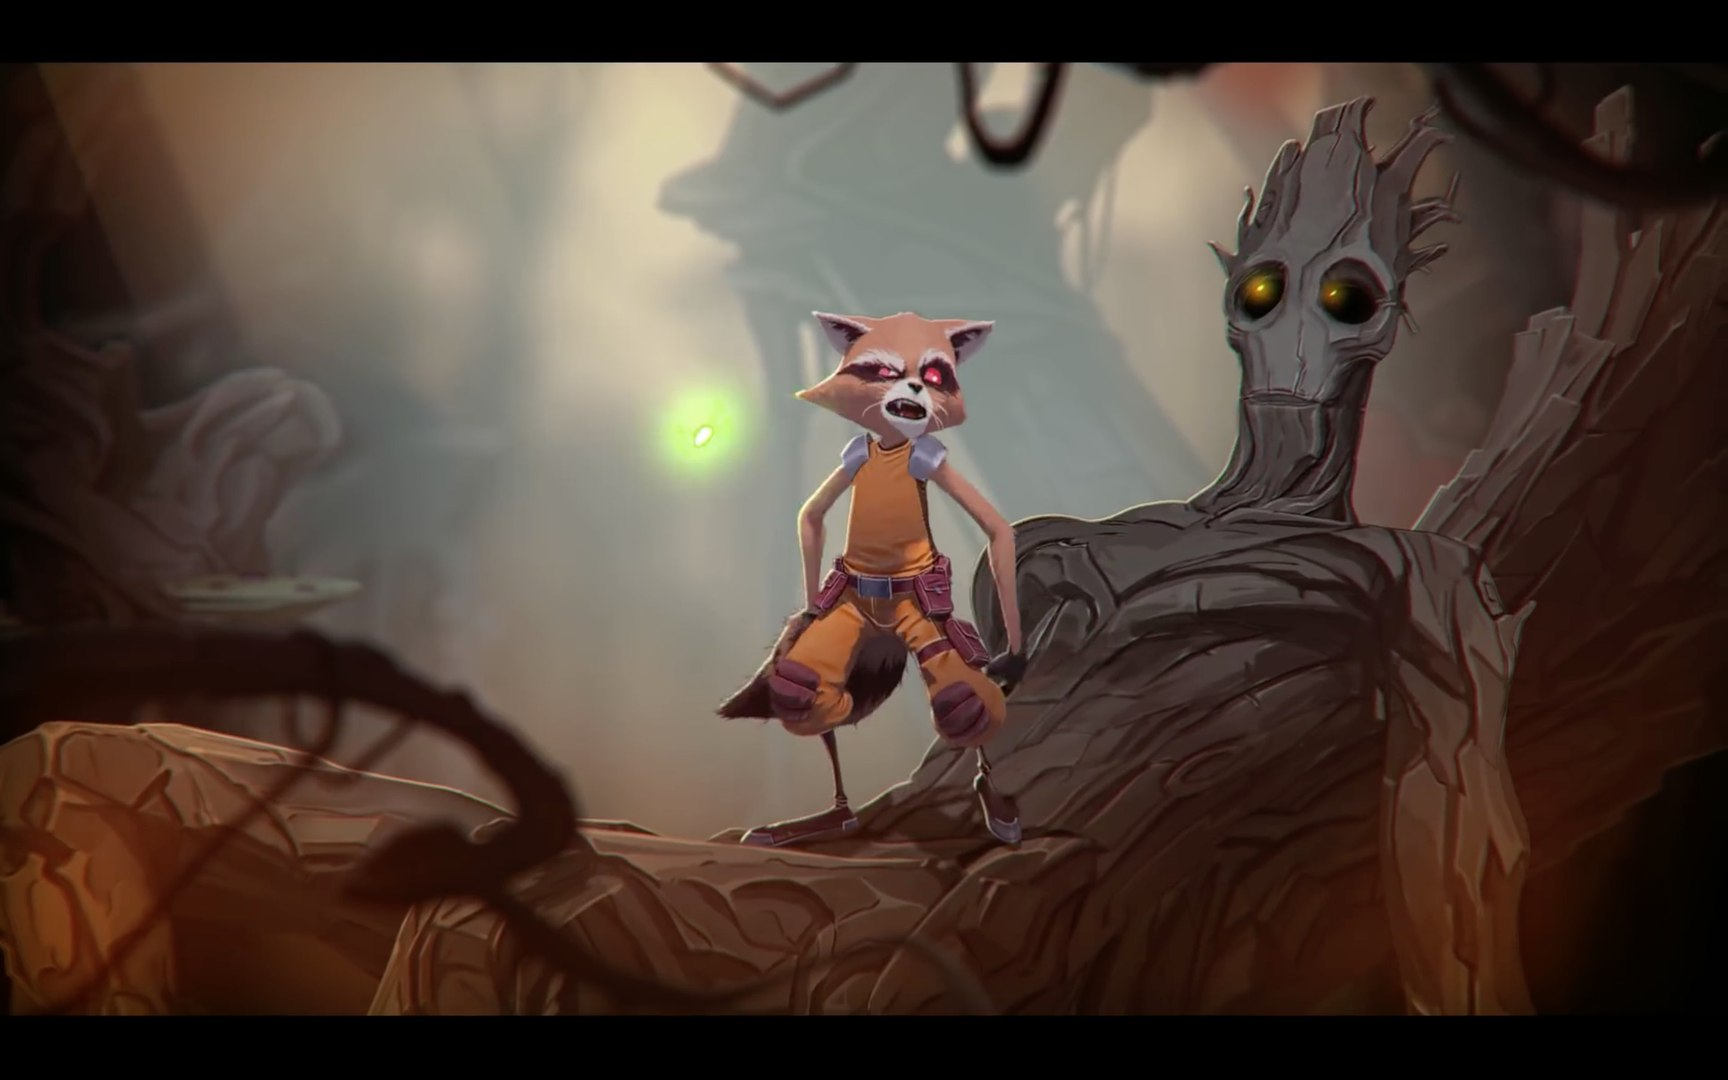 Marvel's Rocket Raccoon & Groot Animation Test Trailer